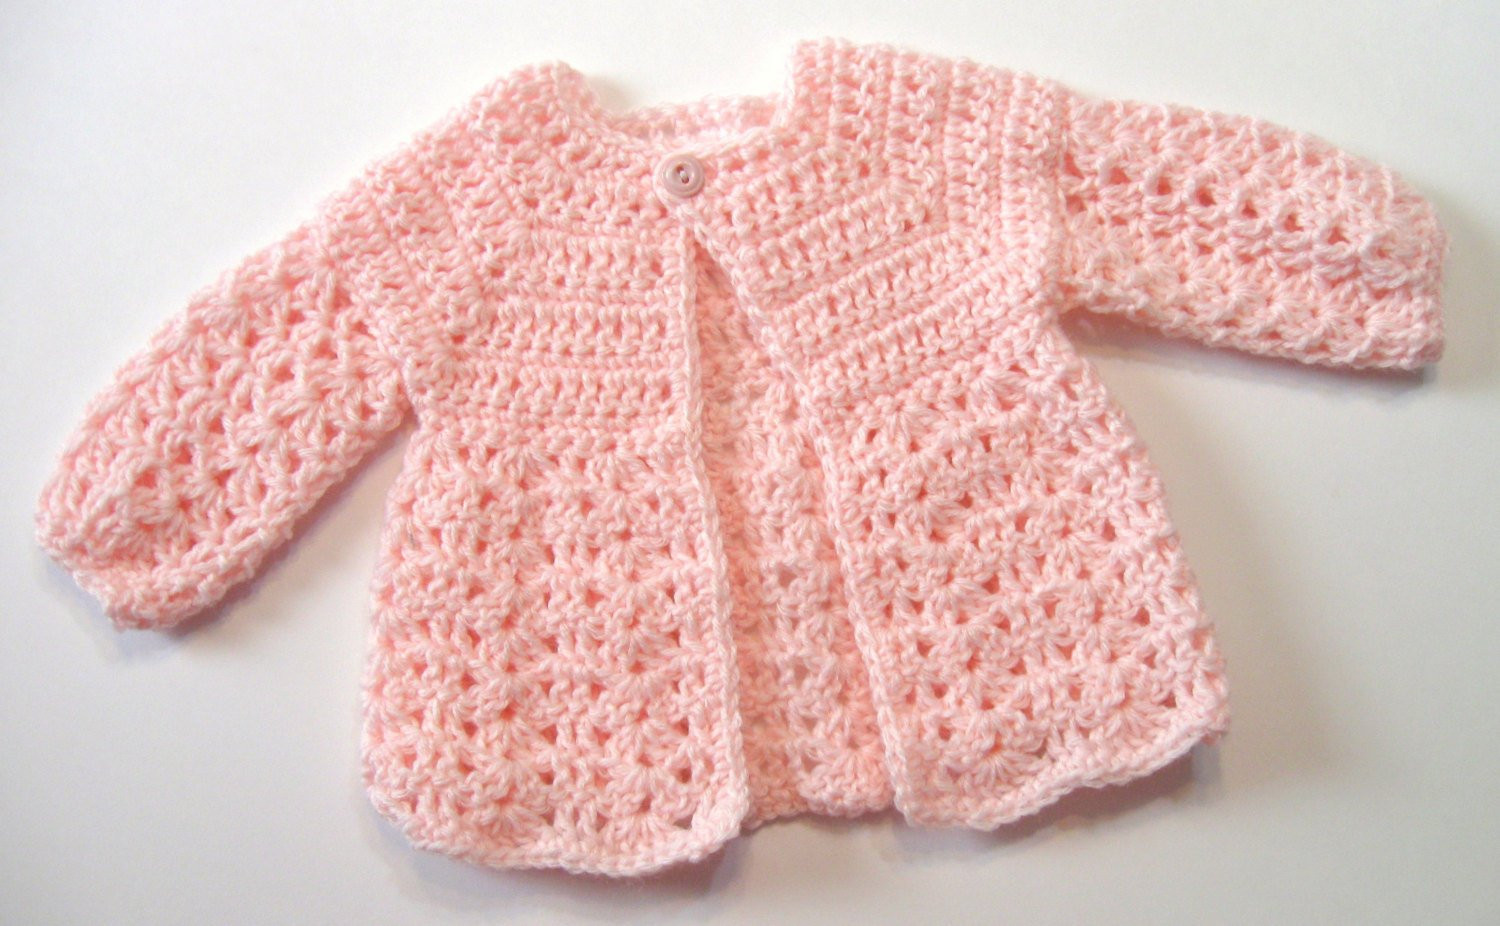 Crochet toddler Sweater New Crochet Pattern Baby Sweater Perfect for Girls Oma S Of Lovely 50 Photos Crochet toddler Sweater